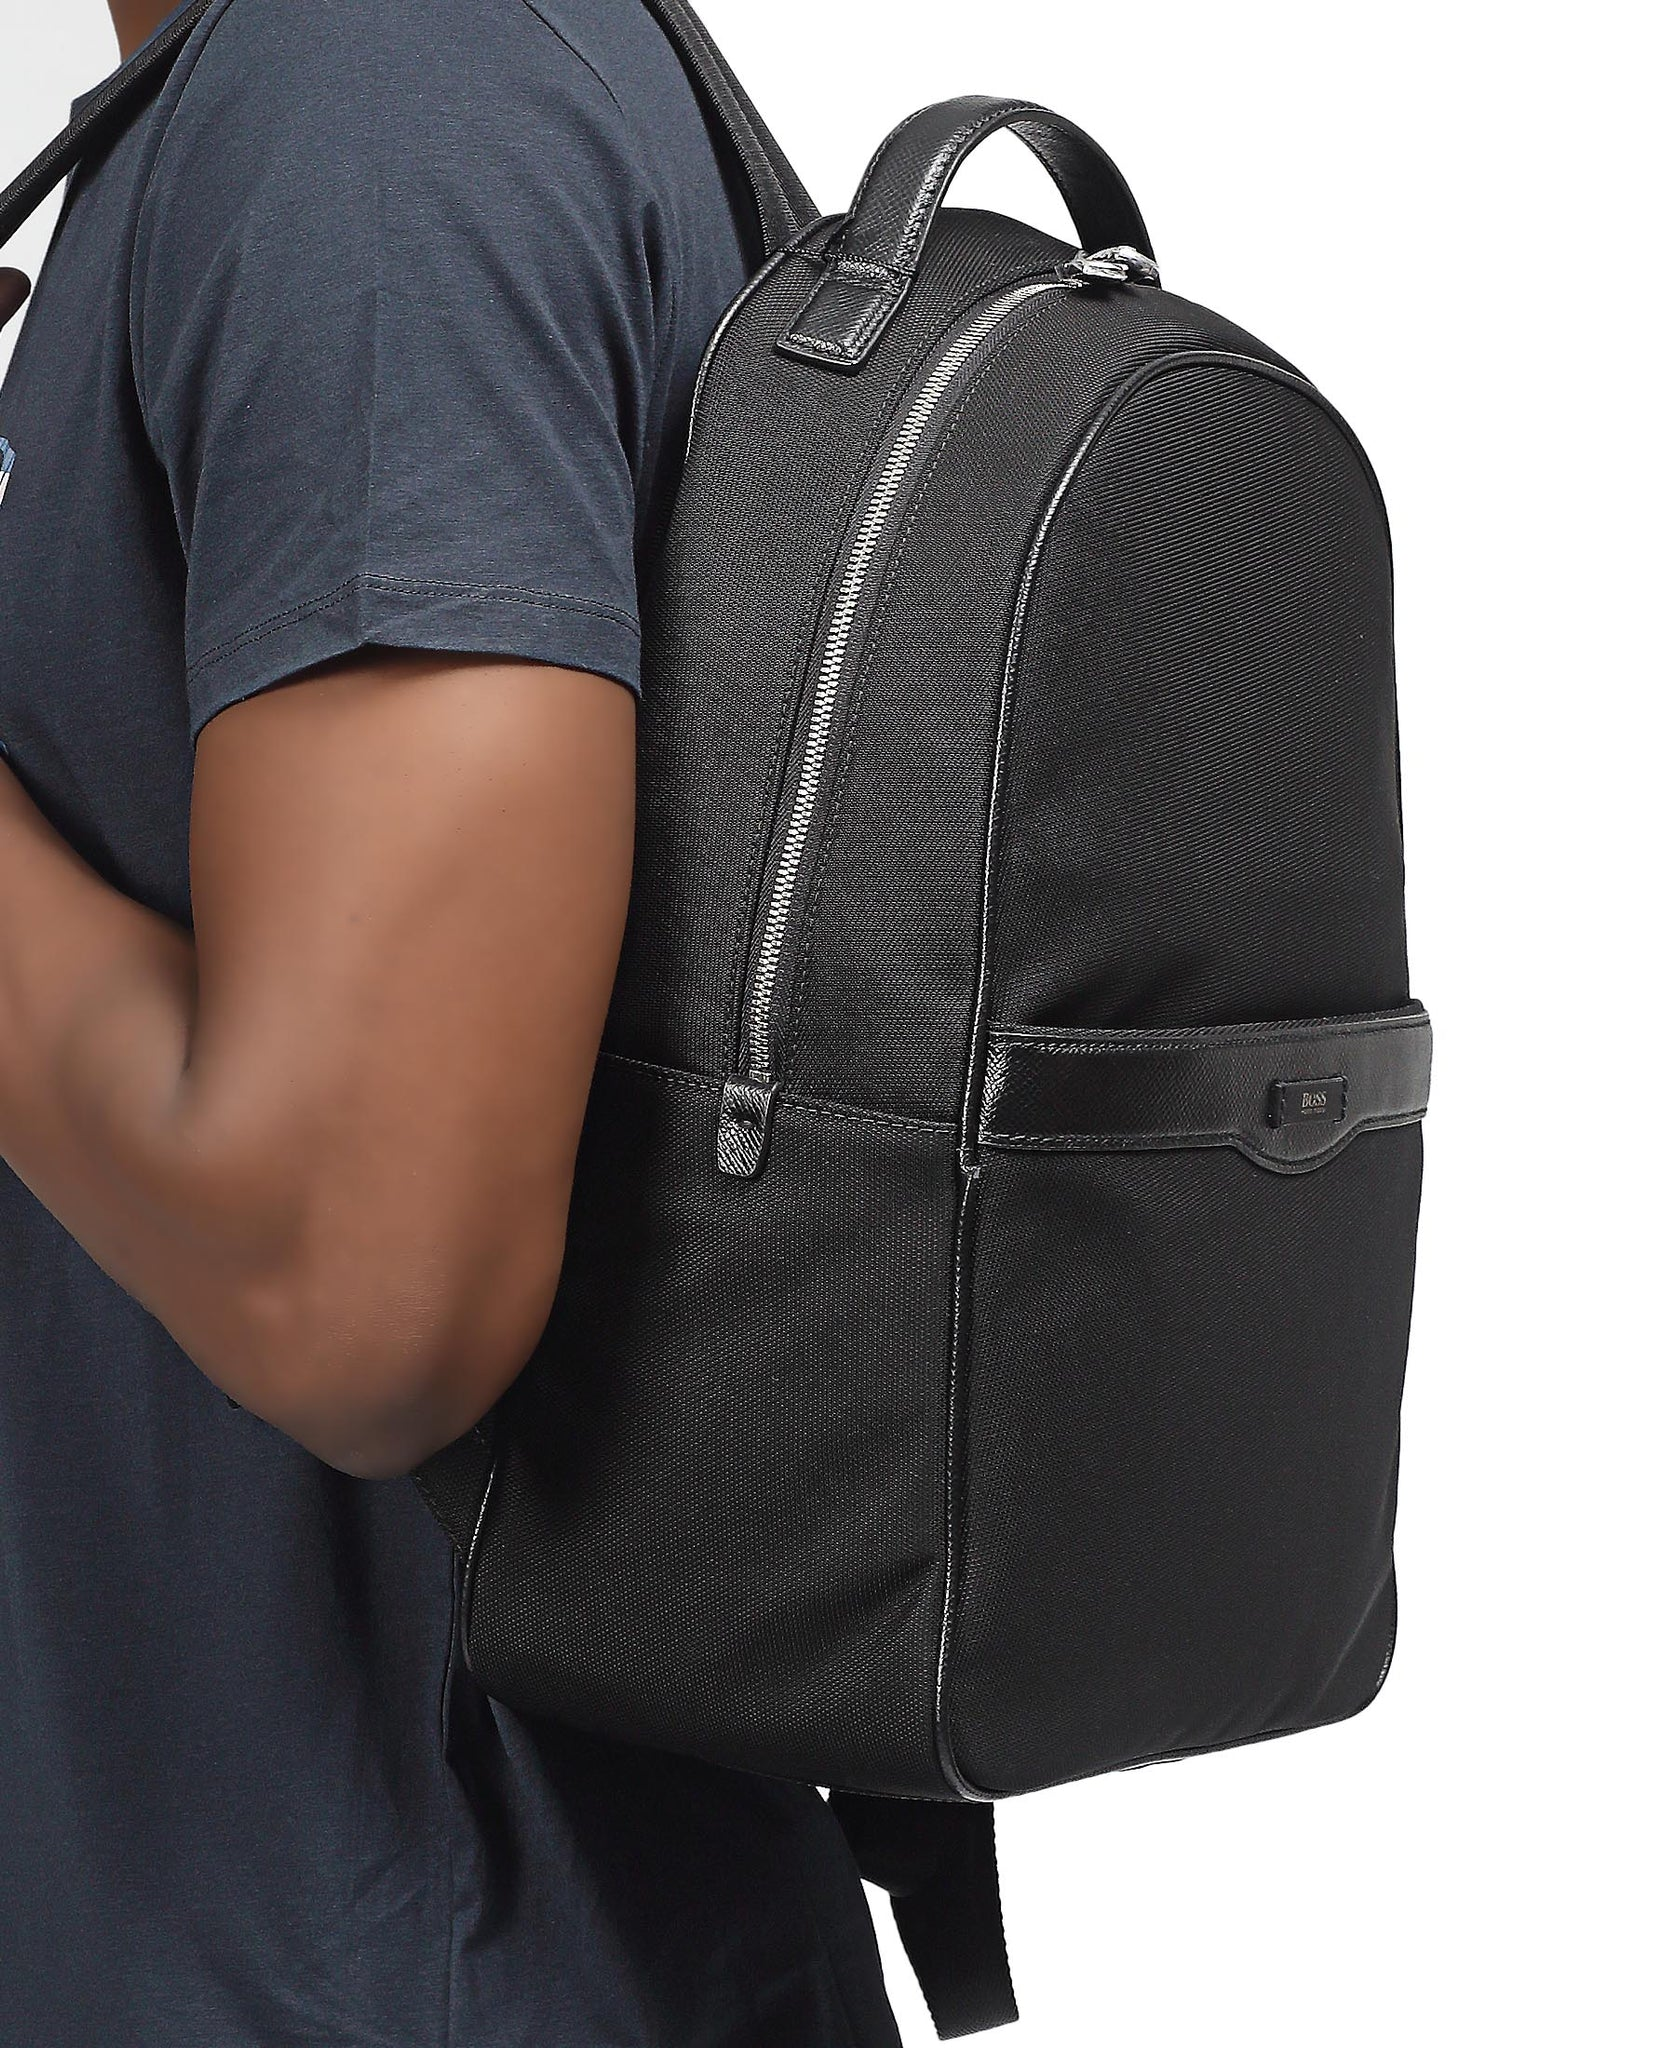 Hugo Boss Backpack - Black